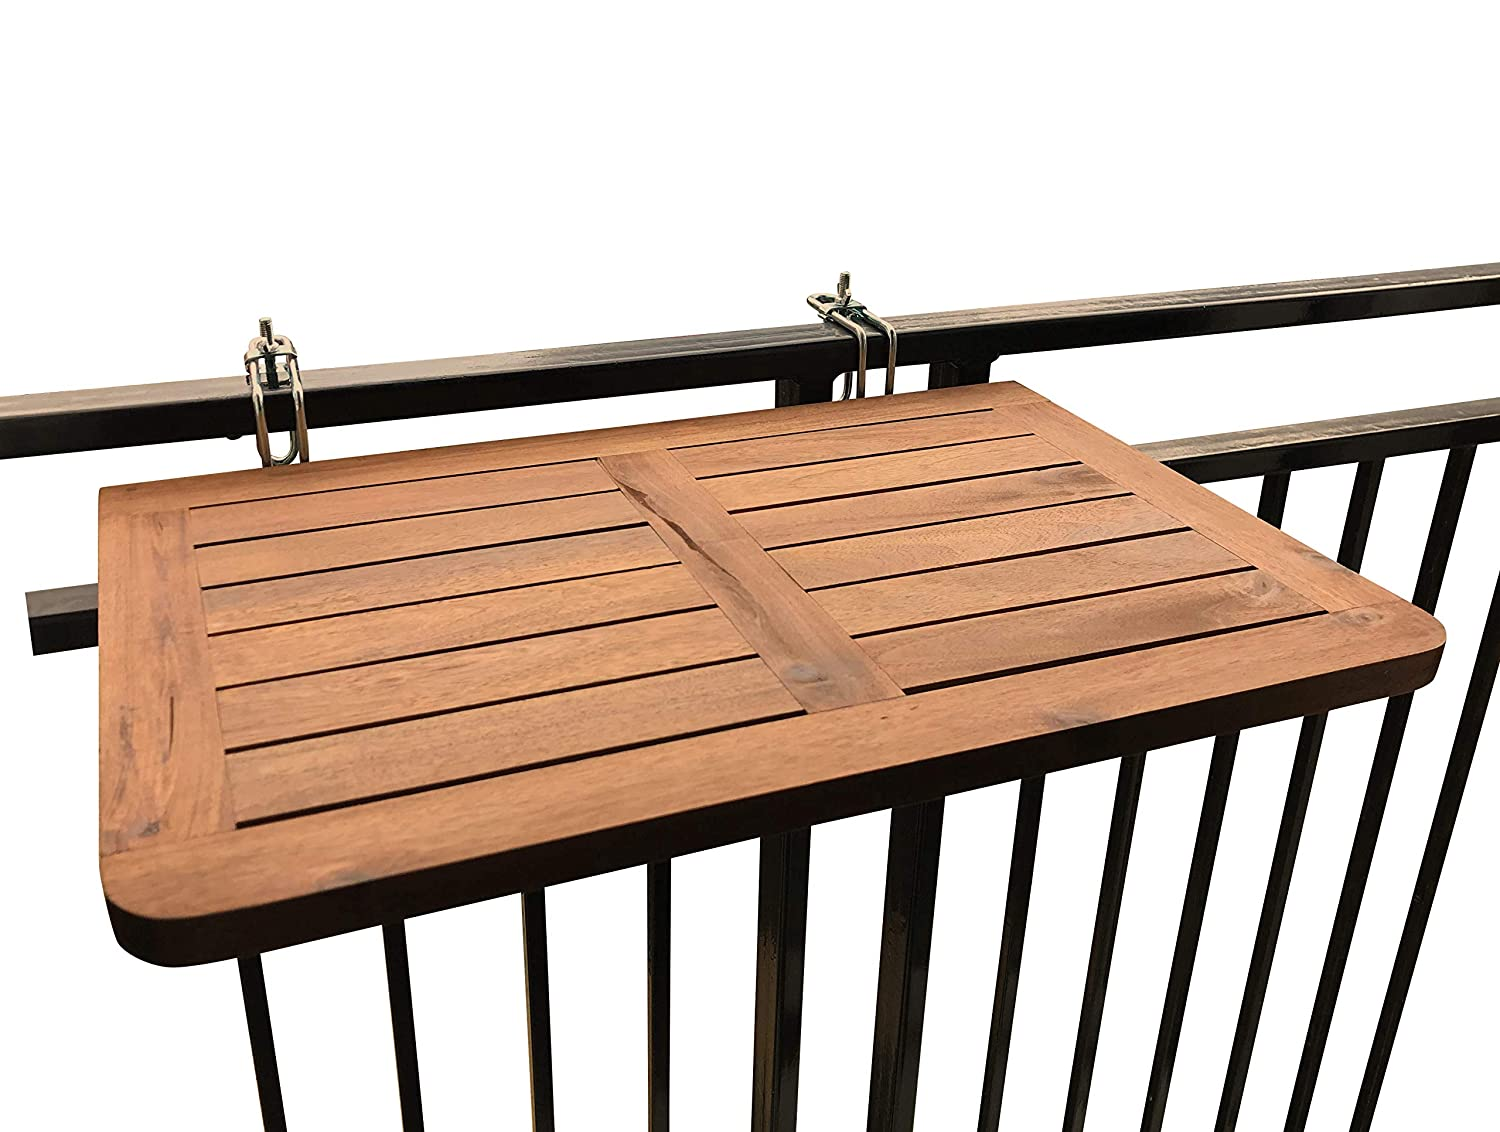 CLICK-DECK Balcony Table HARDWOOD Table Folding Table Hanging Railing Table Dining Garden BBQ Side Table